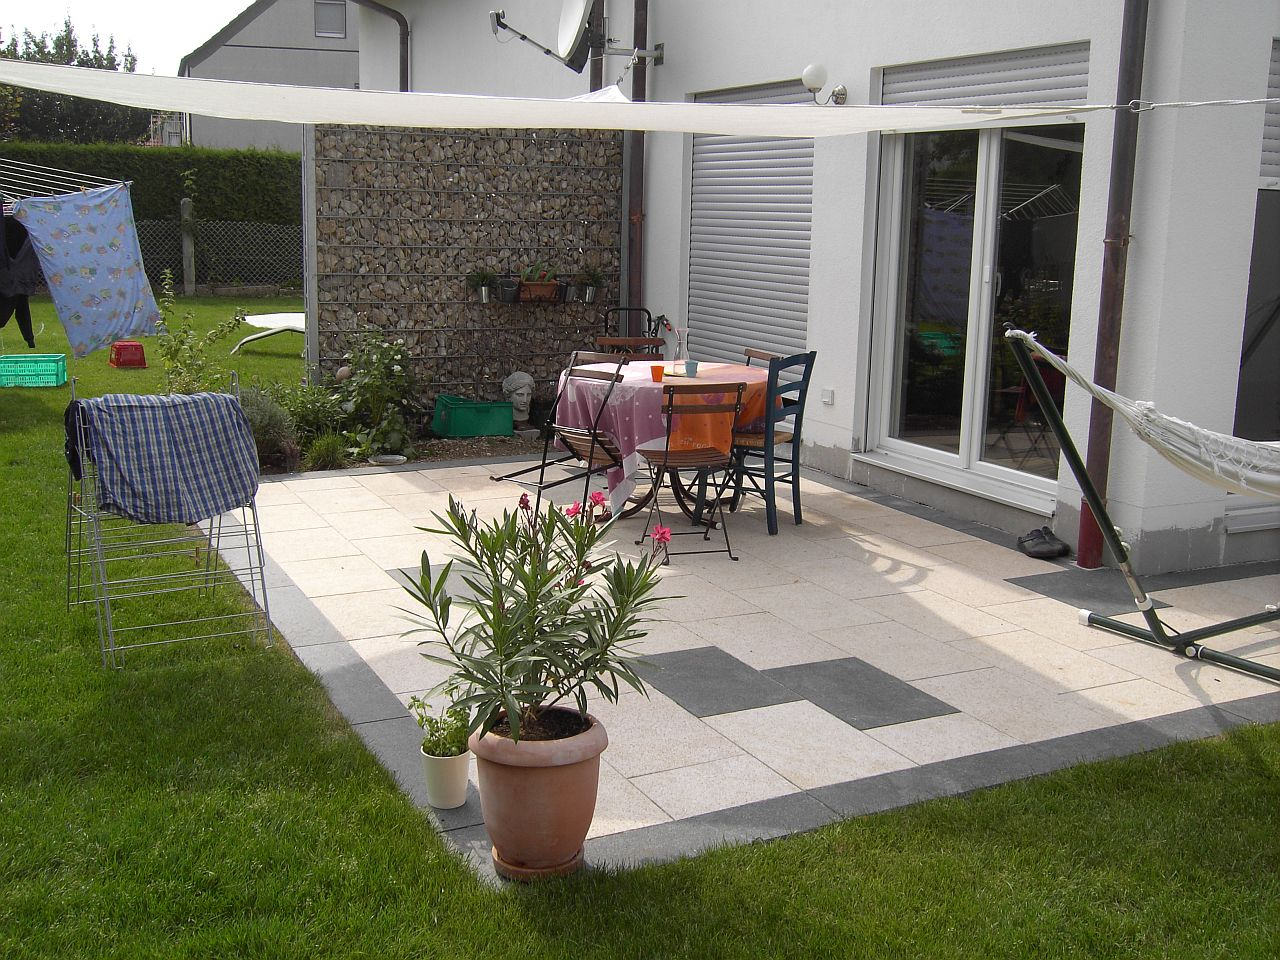 D coration mur de terrasse exemples d 39 am nagements for Decoration mur de terrasse